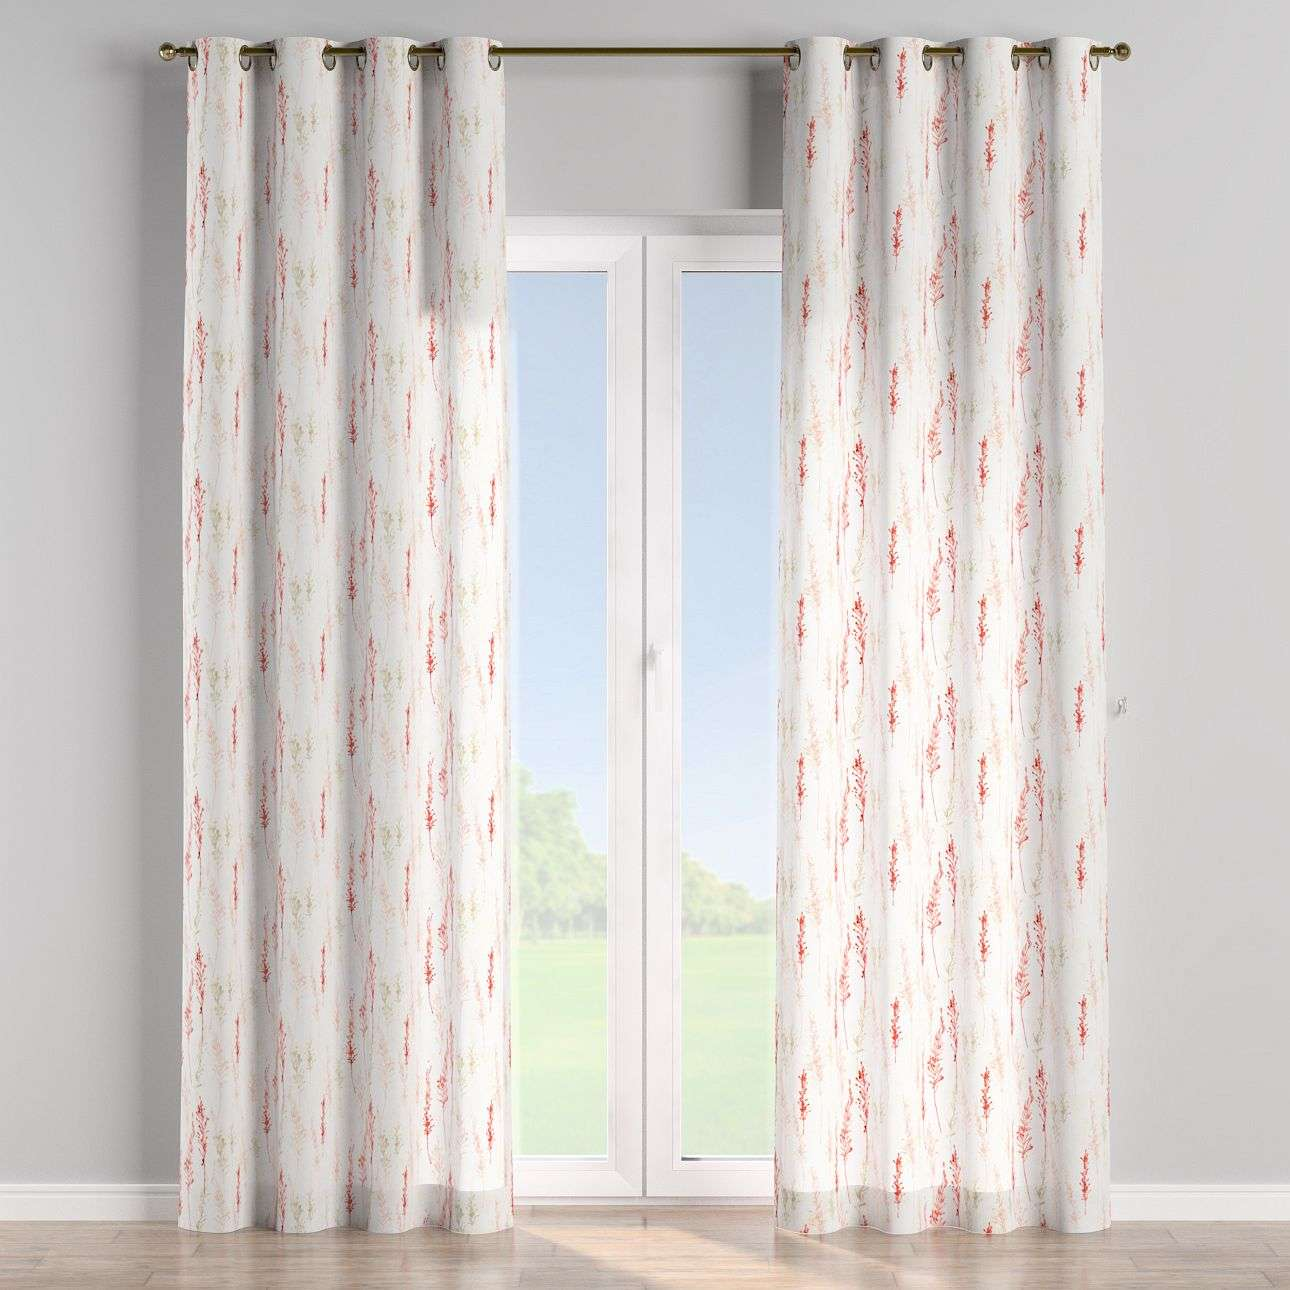 Eyelet curtains in collection SALE, fabric: 141-37